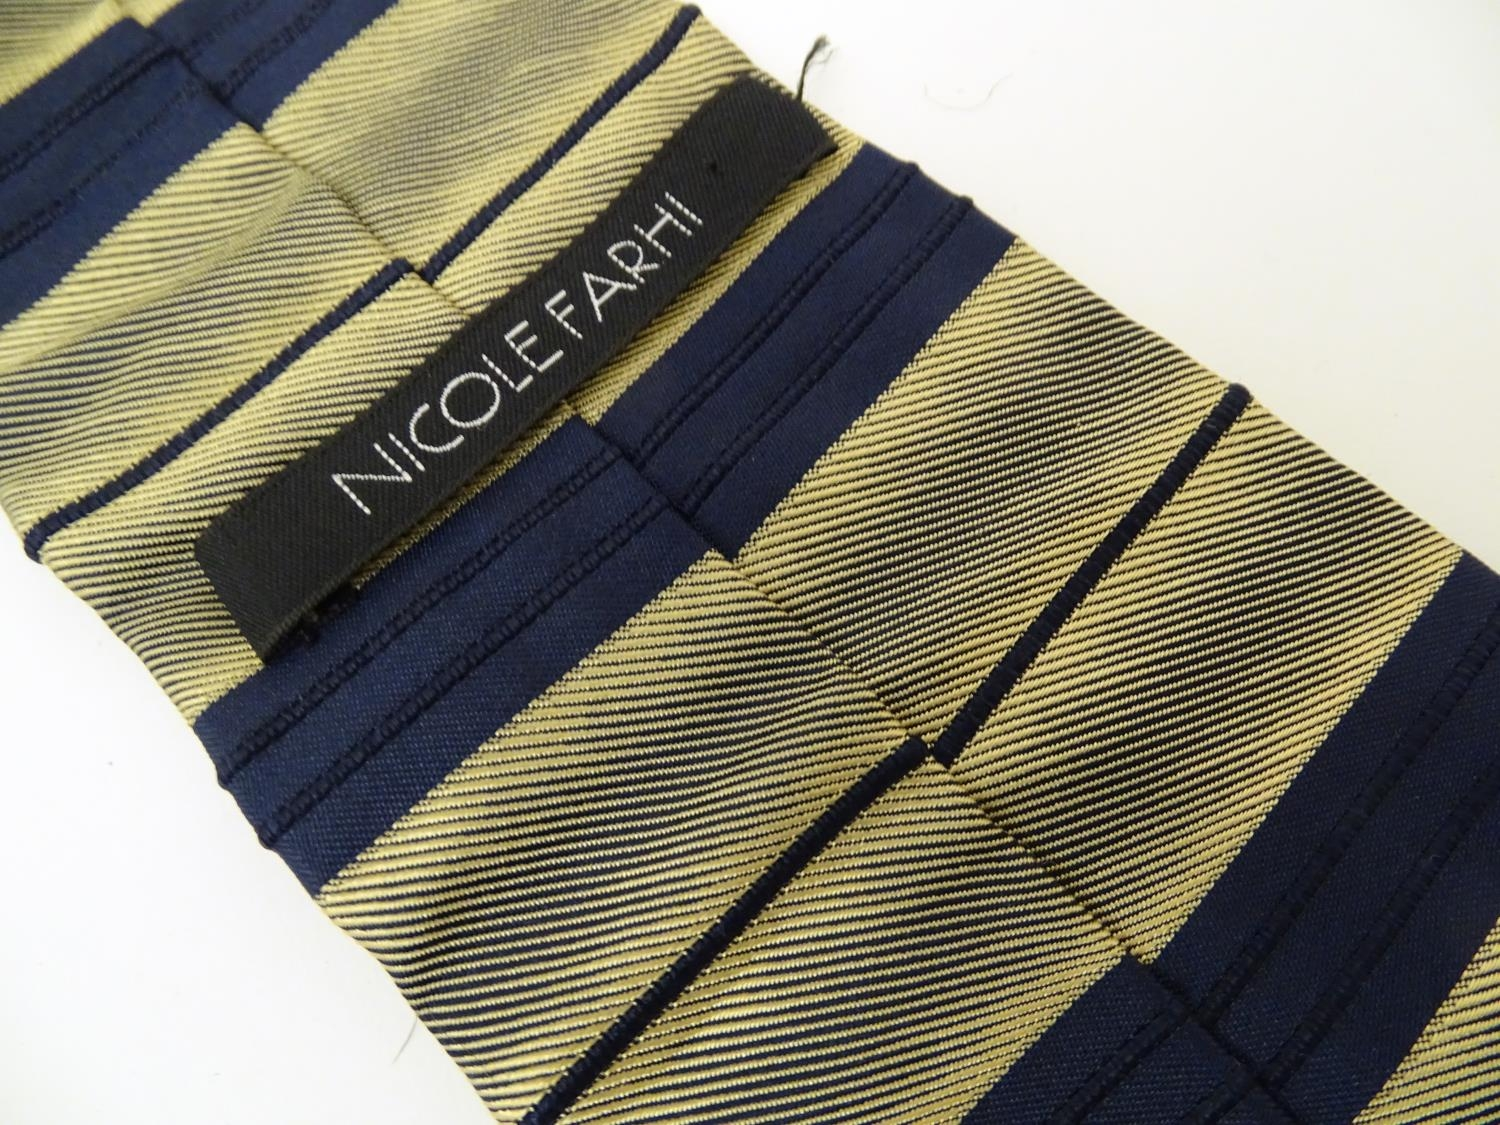 Vintage clothing/ fashion: 6 silk ties in various colours and patterns by Yves Saint Laurent, Nicole - Image 10 of 10